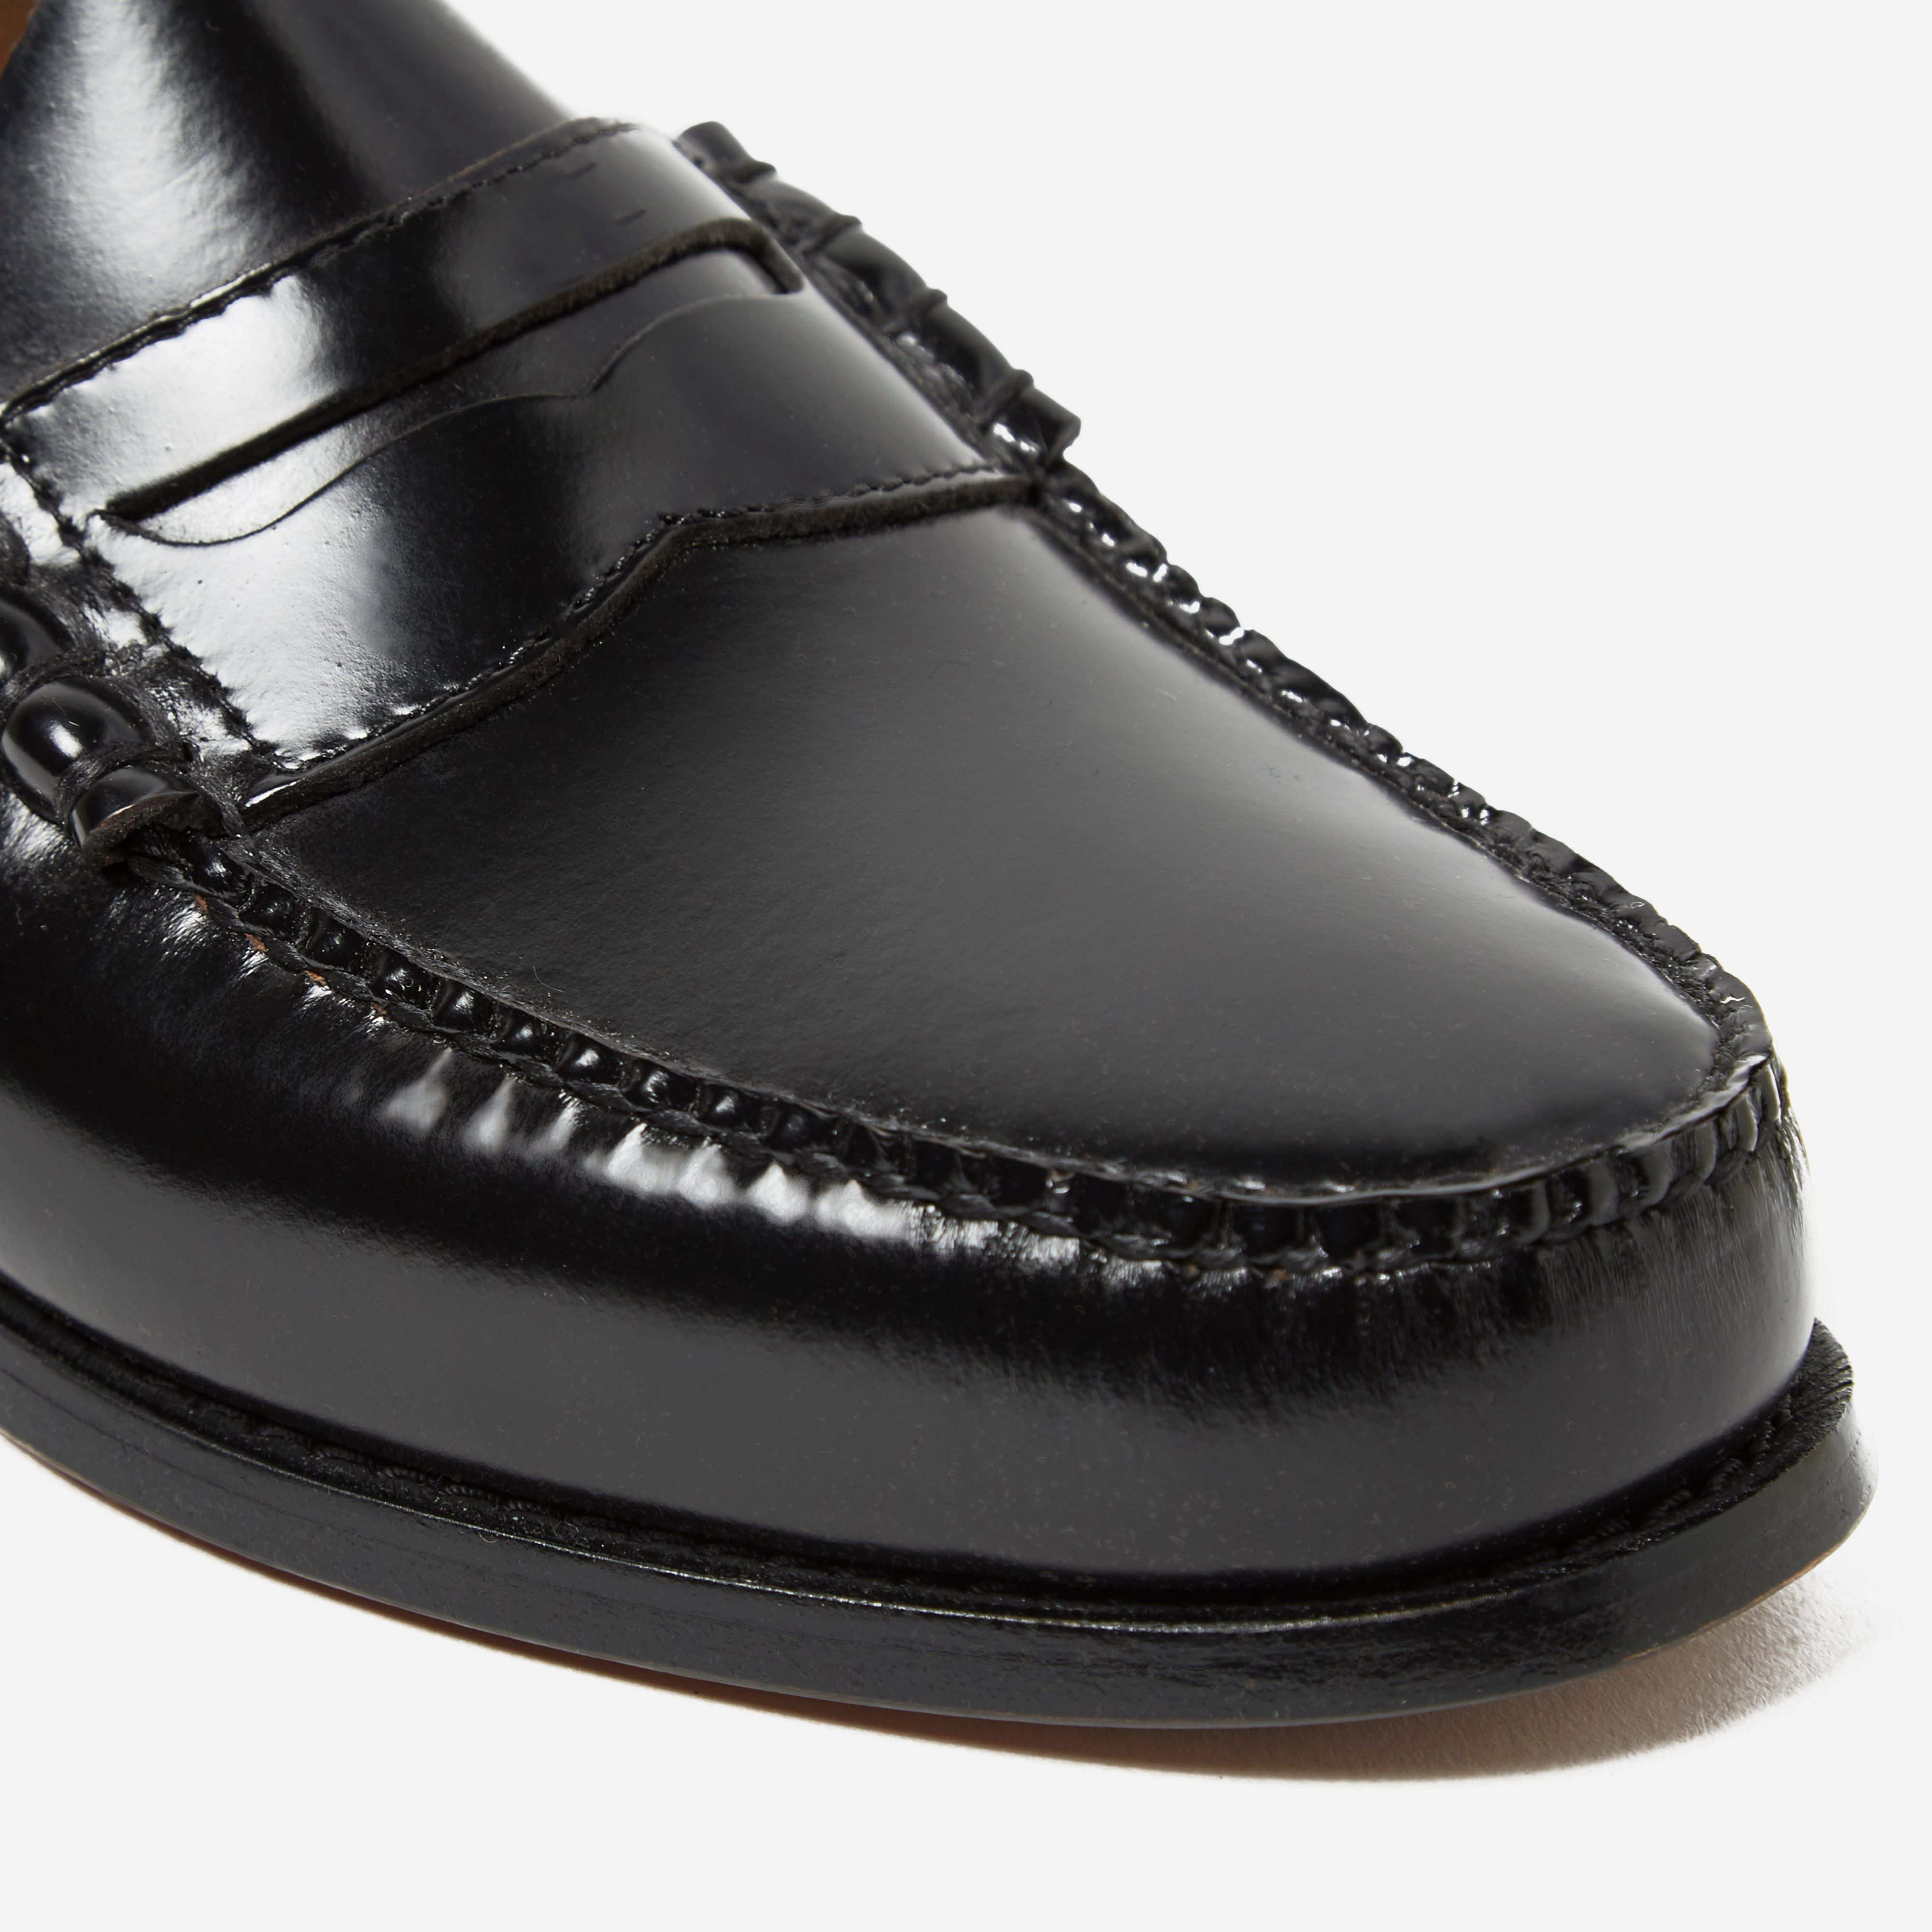 G.H. Bass & Co. Weejun Penny Loafer